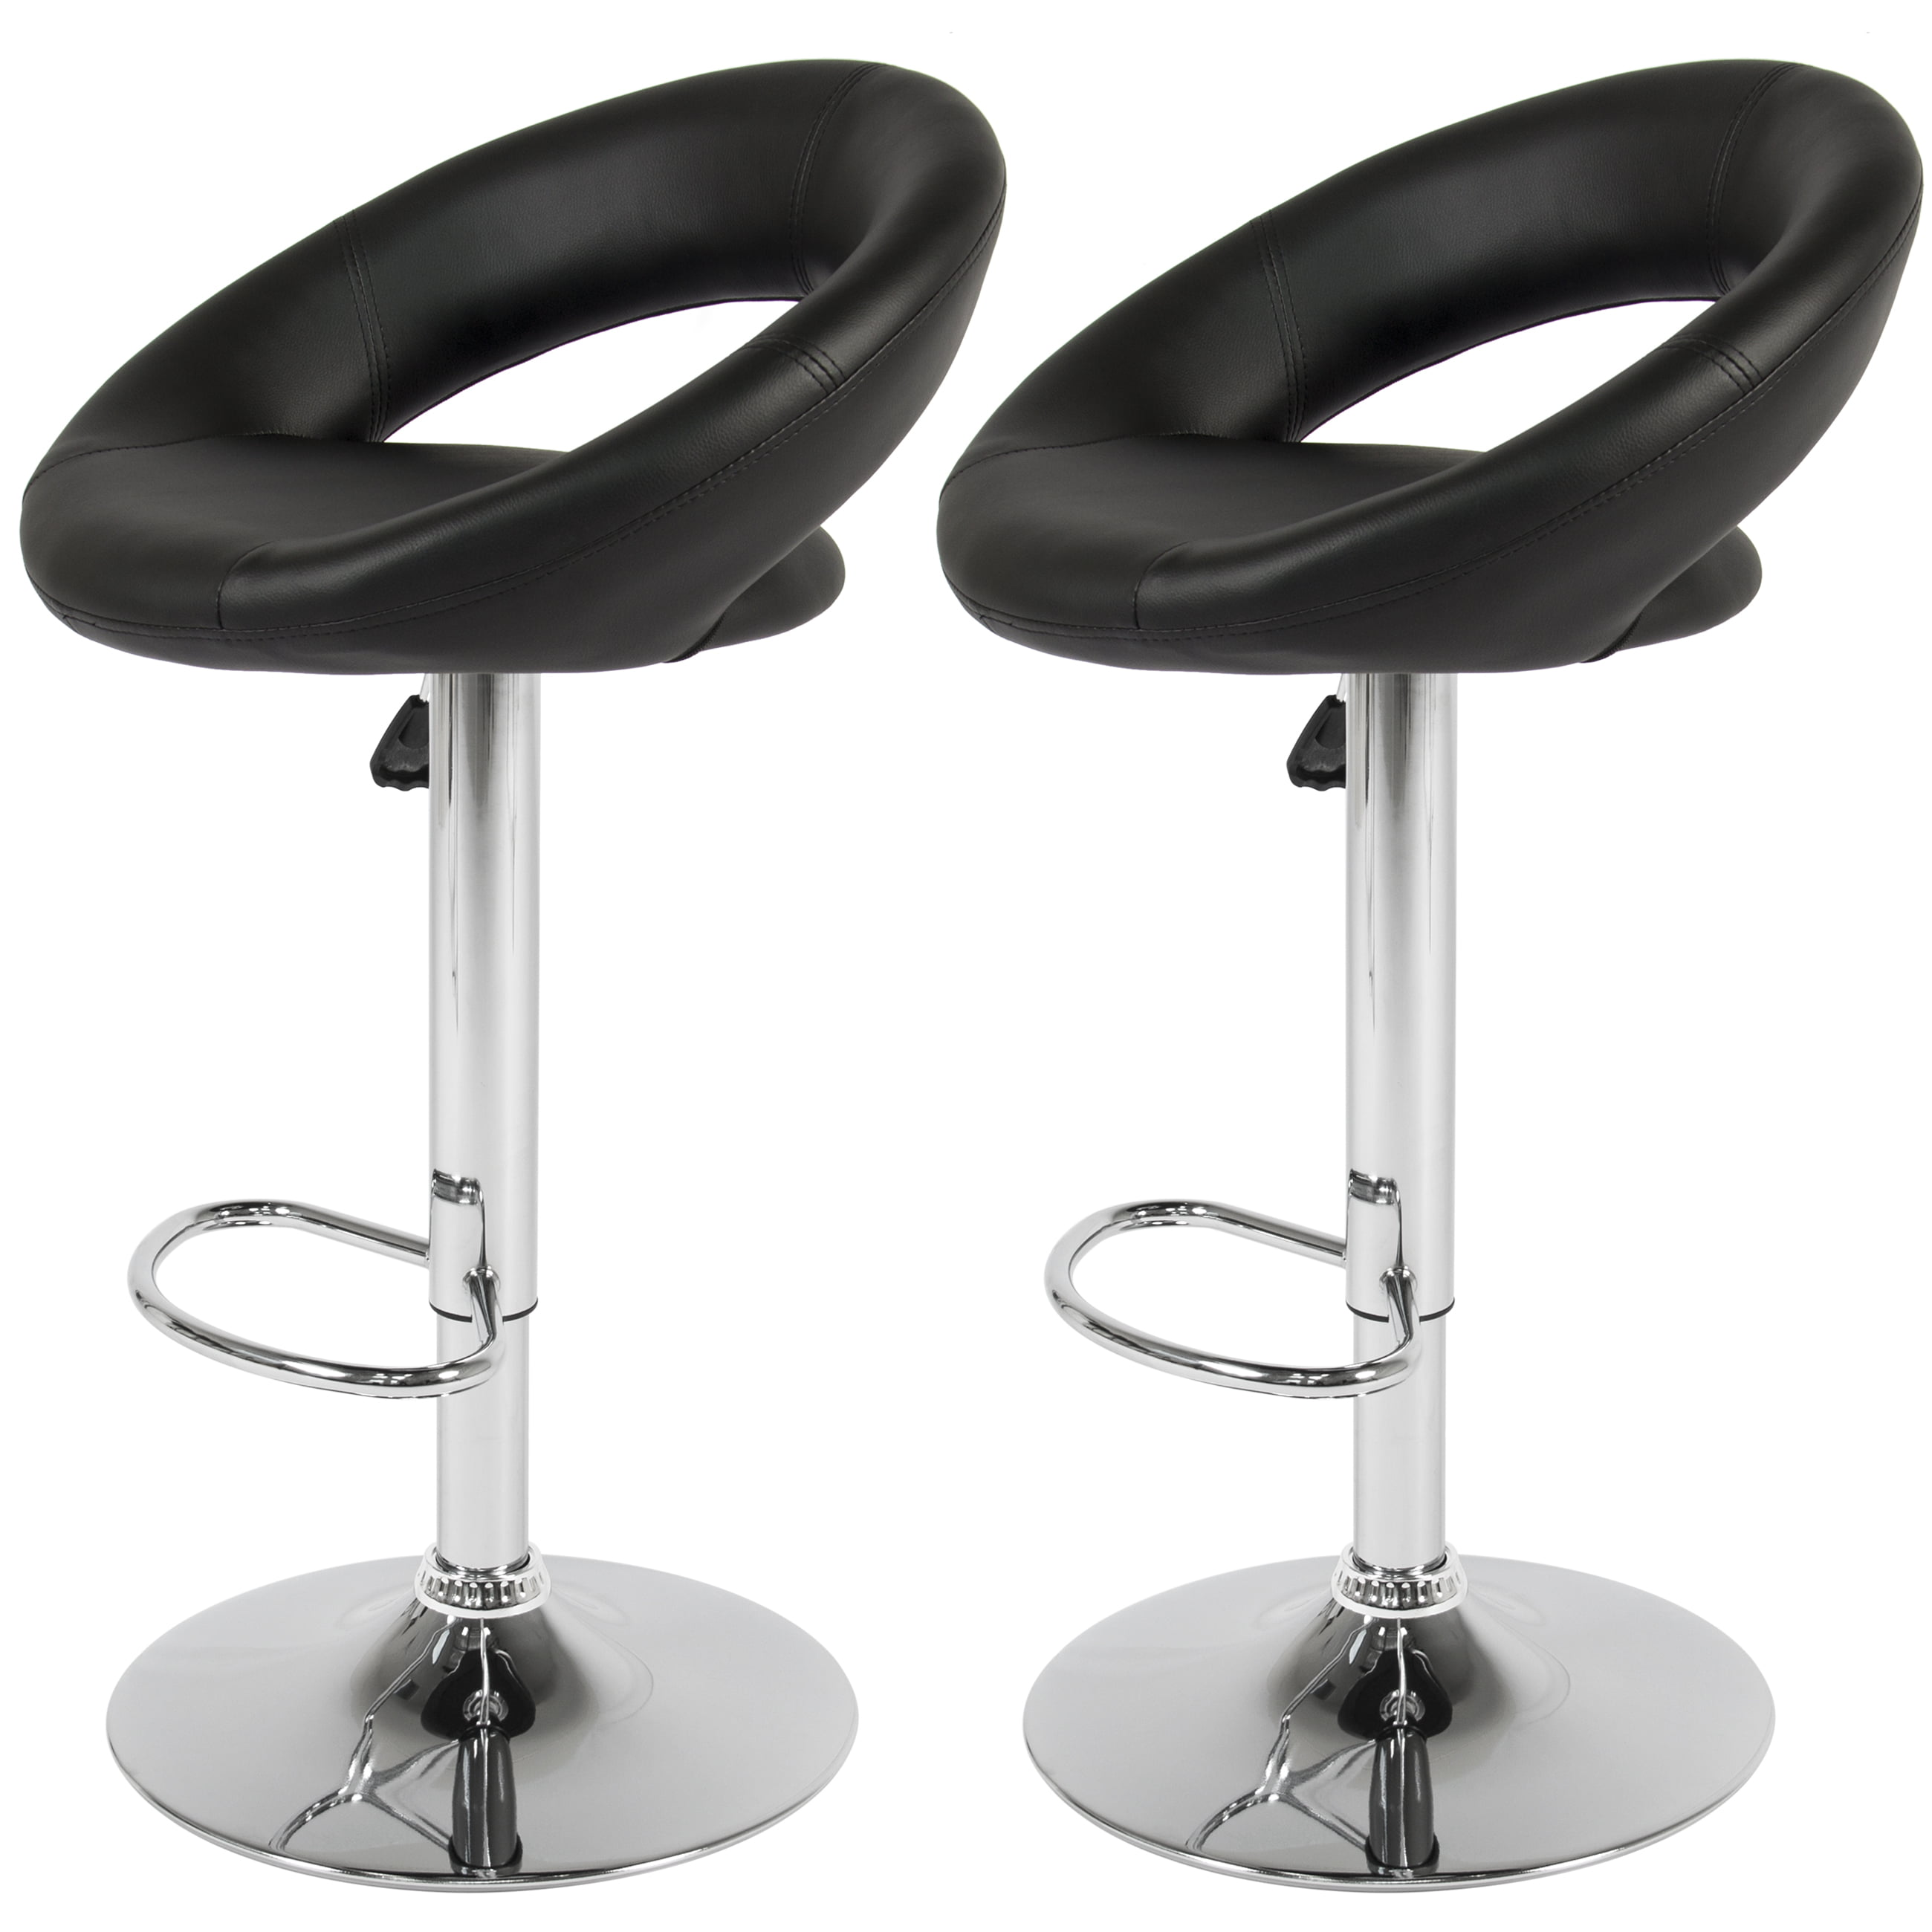 BCP Set of 2 PU Leather Adjustable Swivel Bar Stool Hydraulic Barstool Black. - Walmart.com  sc 1 st  Walmart & BCP Set of 2 PU Leather Adjustable Swivel Bar Stool Hydraulic ... islam-shia.org